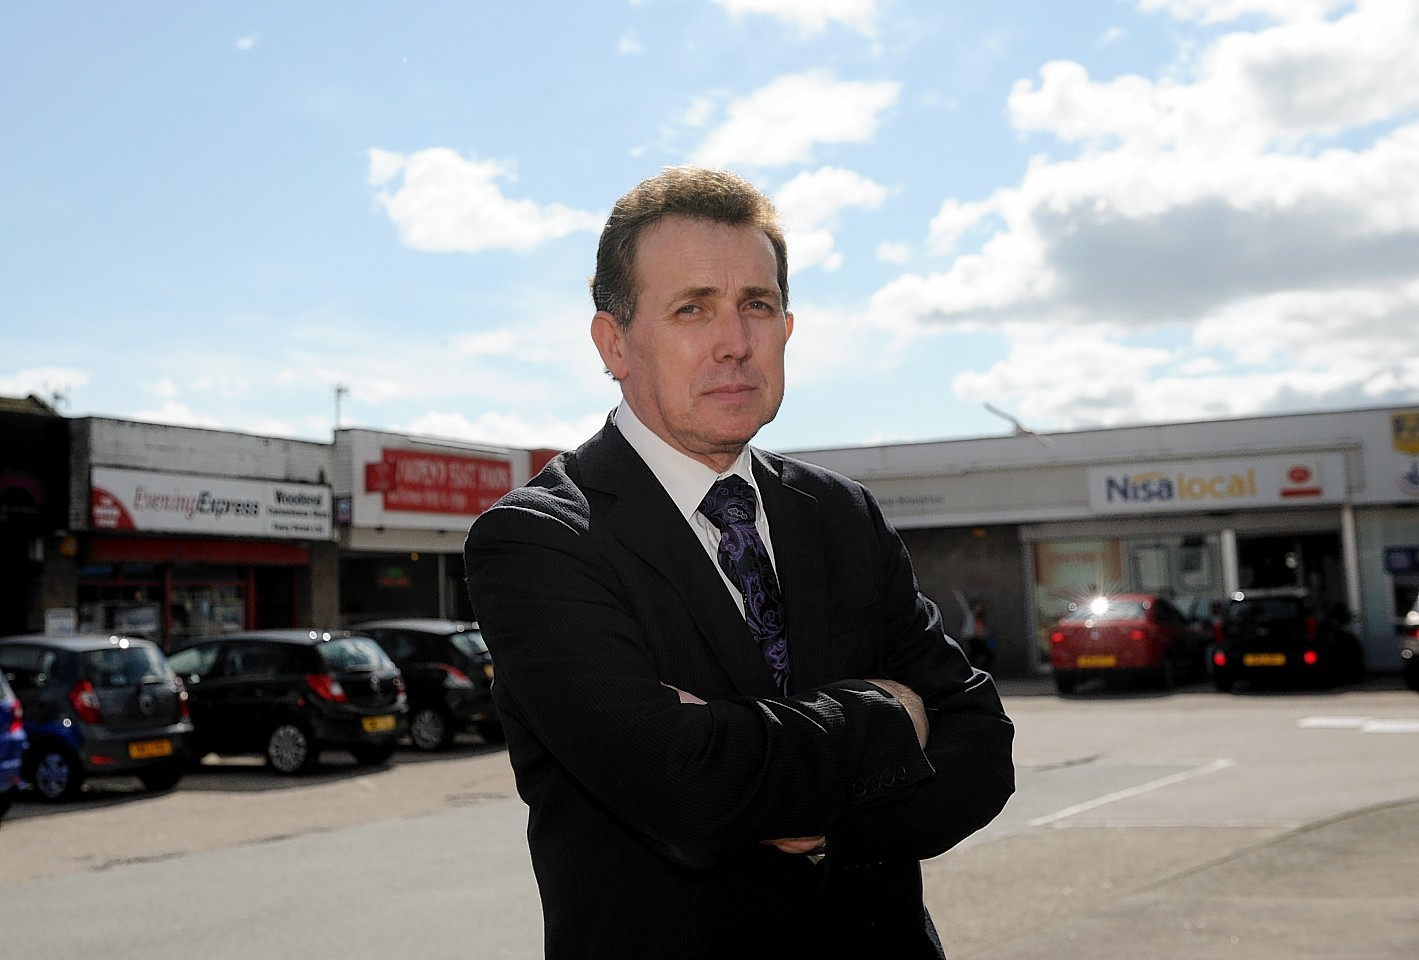 Kingswells, Sheddocksley and Summerhill councillor Steve Delaney.  Picture by Kath Flannery.